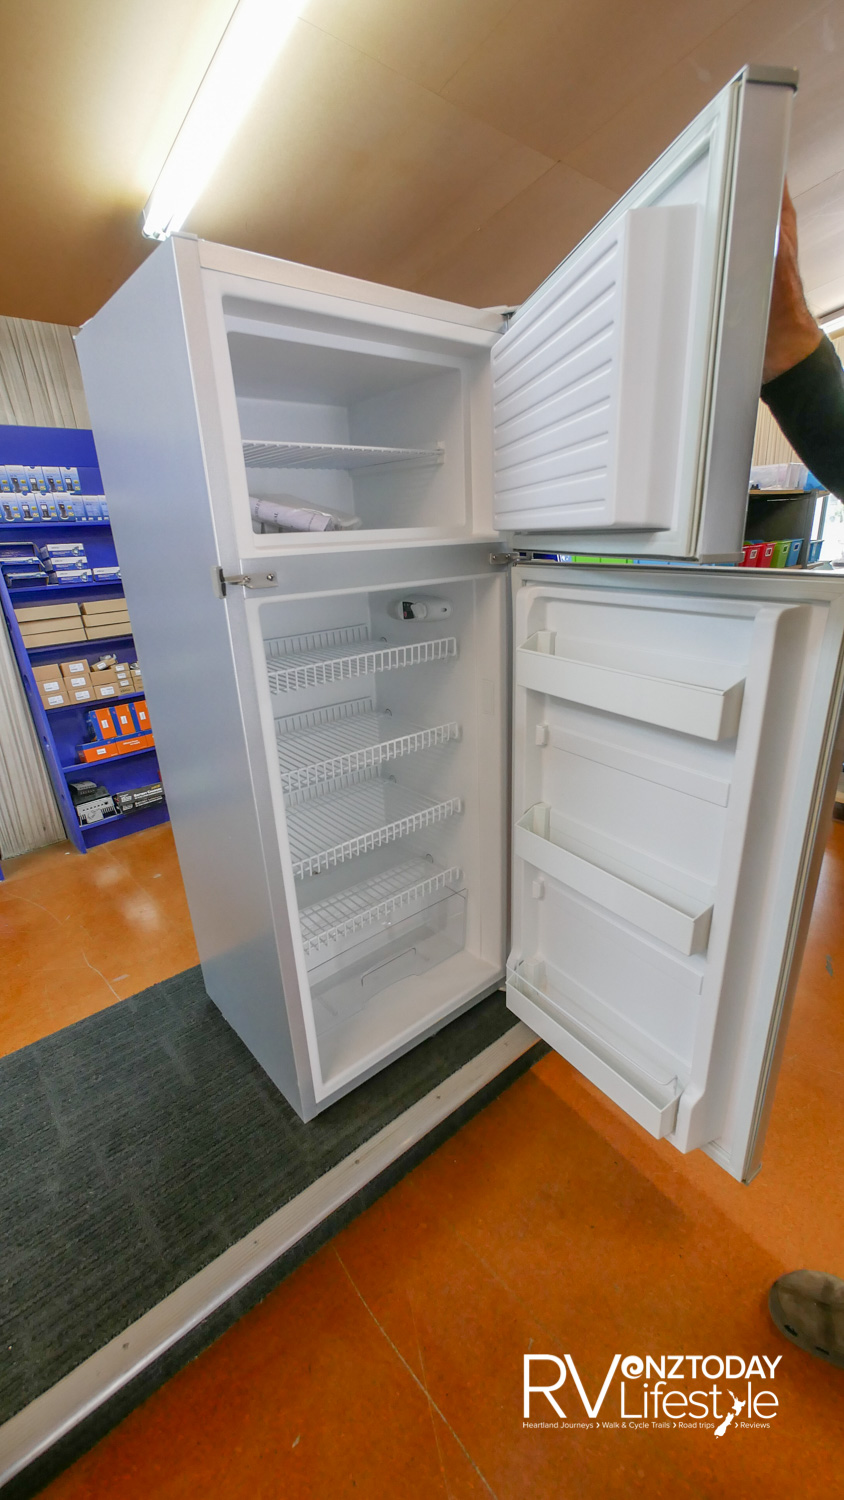 Vantage specialises in solar powered 12V compressor fridge and freezer units and we were impressed with the value for the price. These units come in chilly bin size right up to 218L fridge with separate 53L freezer